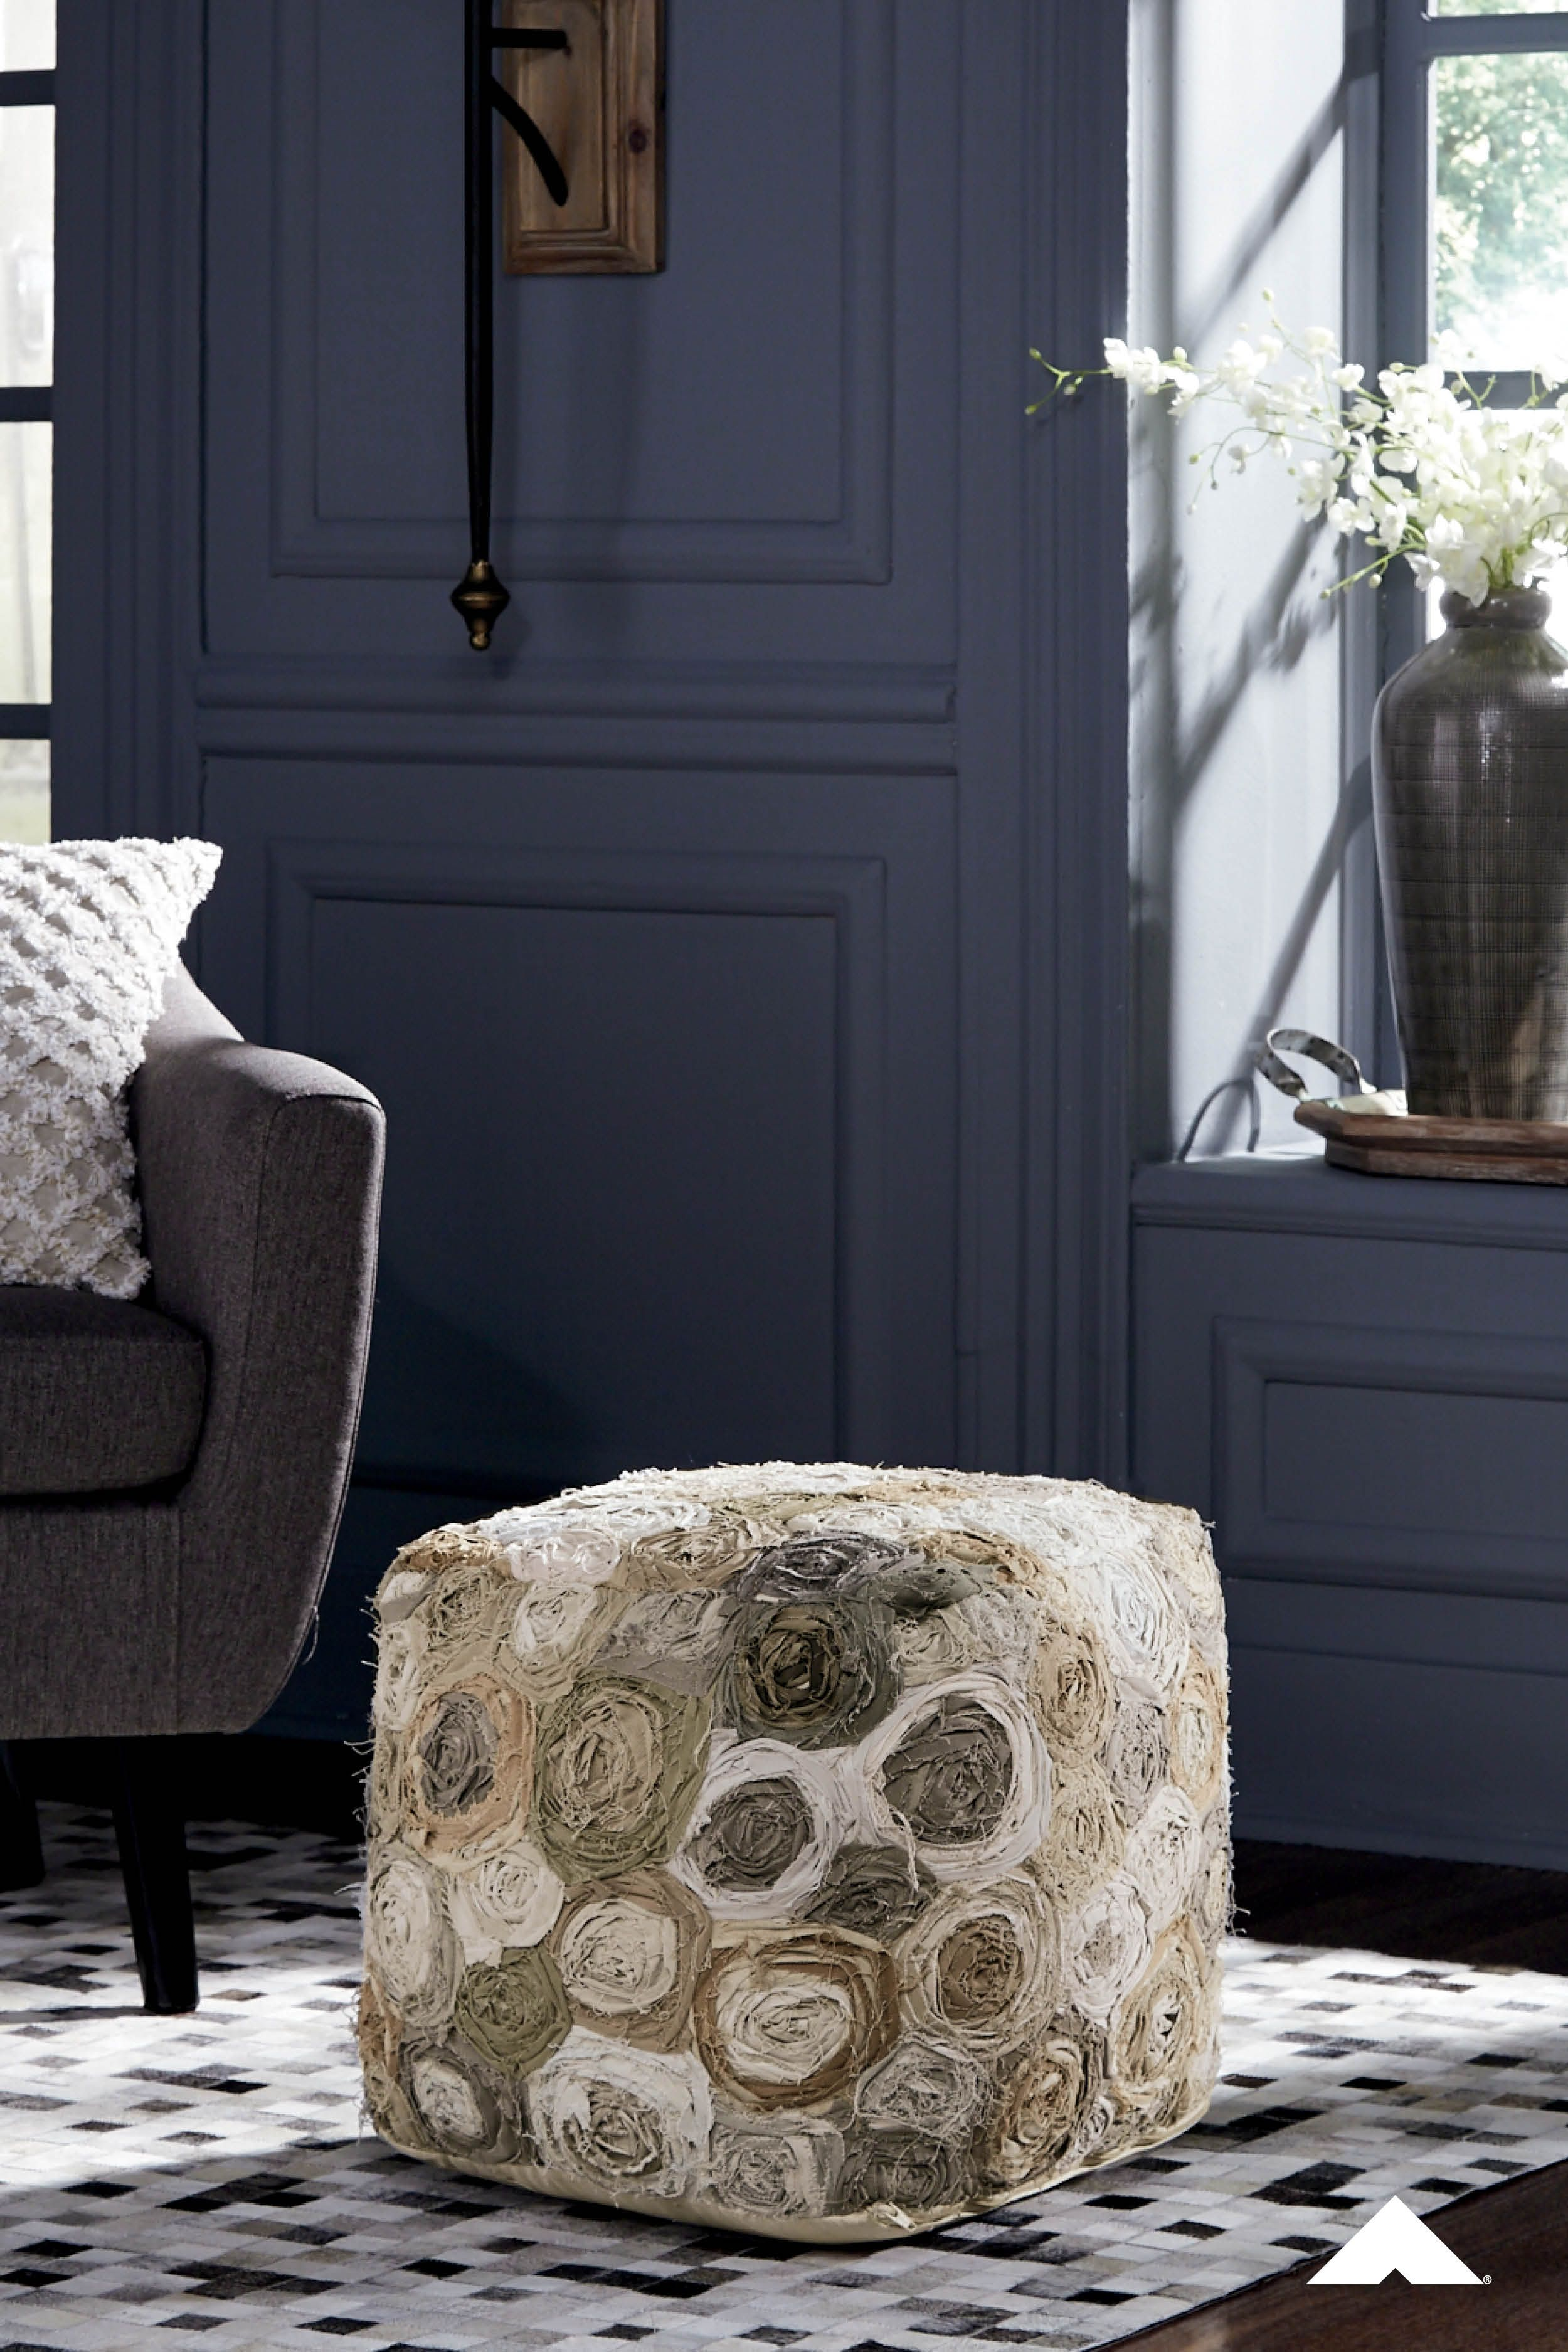 Roses Ashley Furniture : roses, ashley, furniture, Bayrose, Multi, Everything's, Coming, Roses., Embrace, Trend, Rose-patterned, Pouf., Artful, Texture, Decor,, Ashley, Furniture,